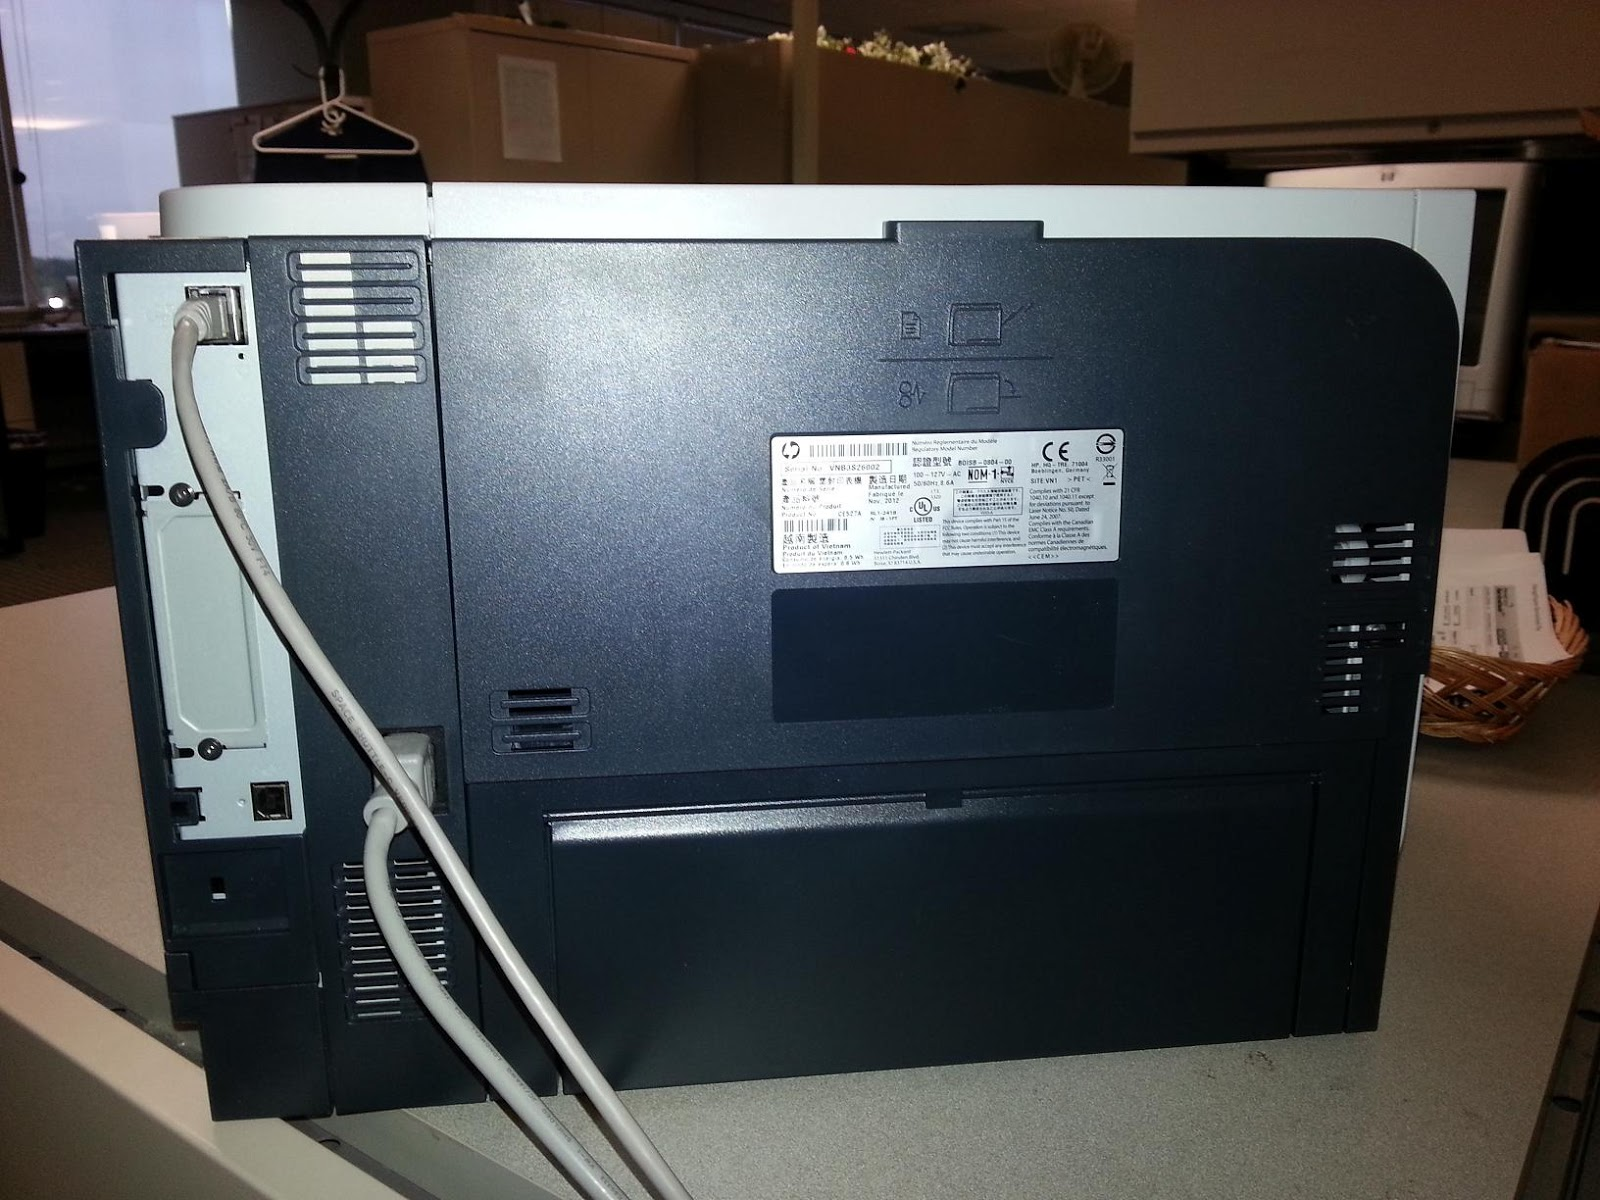 hewlett packard p3015 how to print a network. Black Bedroom Furniture Sets. Home Design Ideas